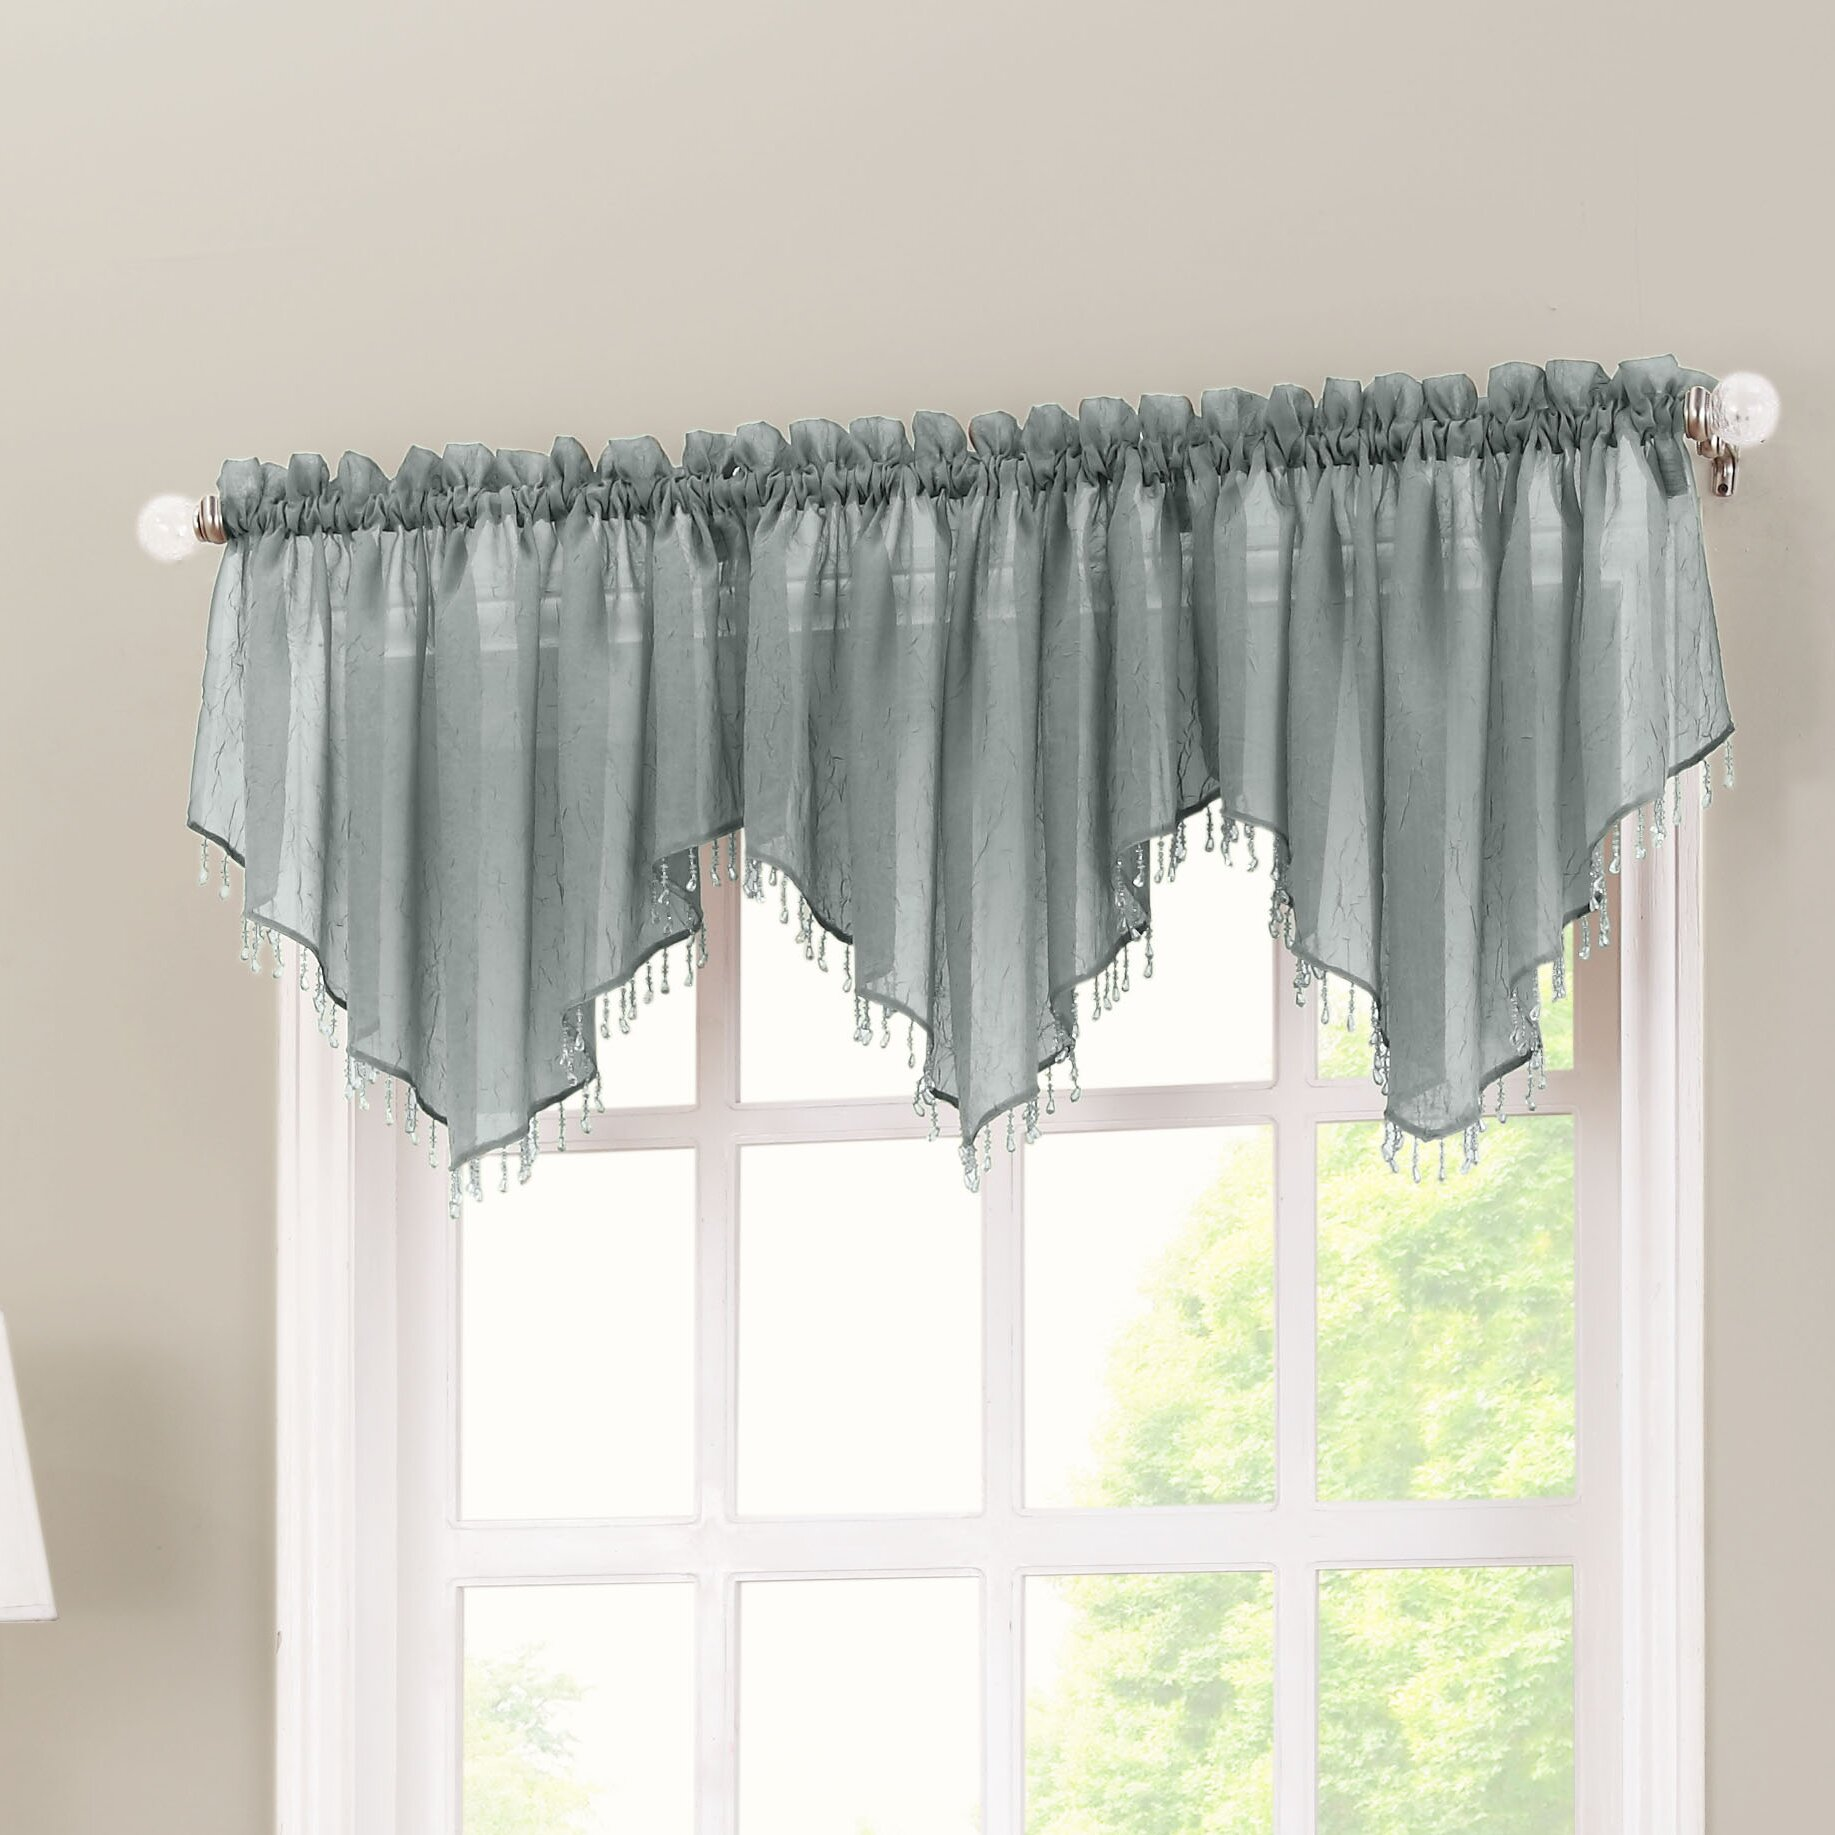 No 918 Crushed Sheer Voile 51 Curtain Valance Reviews Wayfair